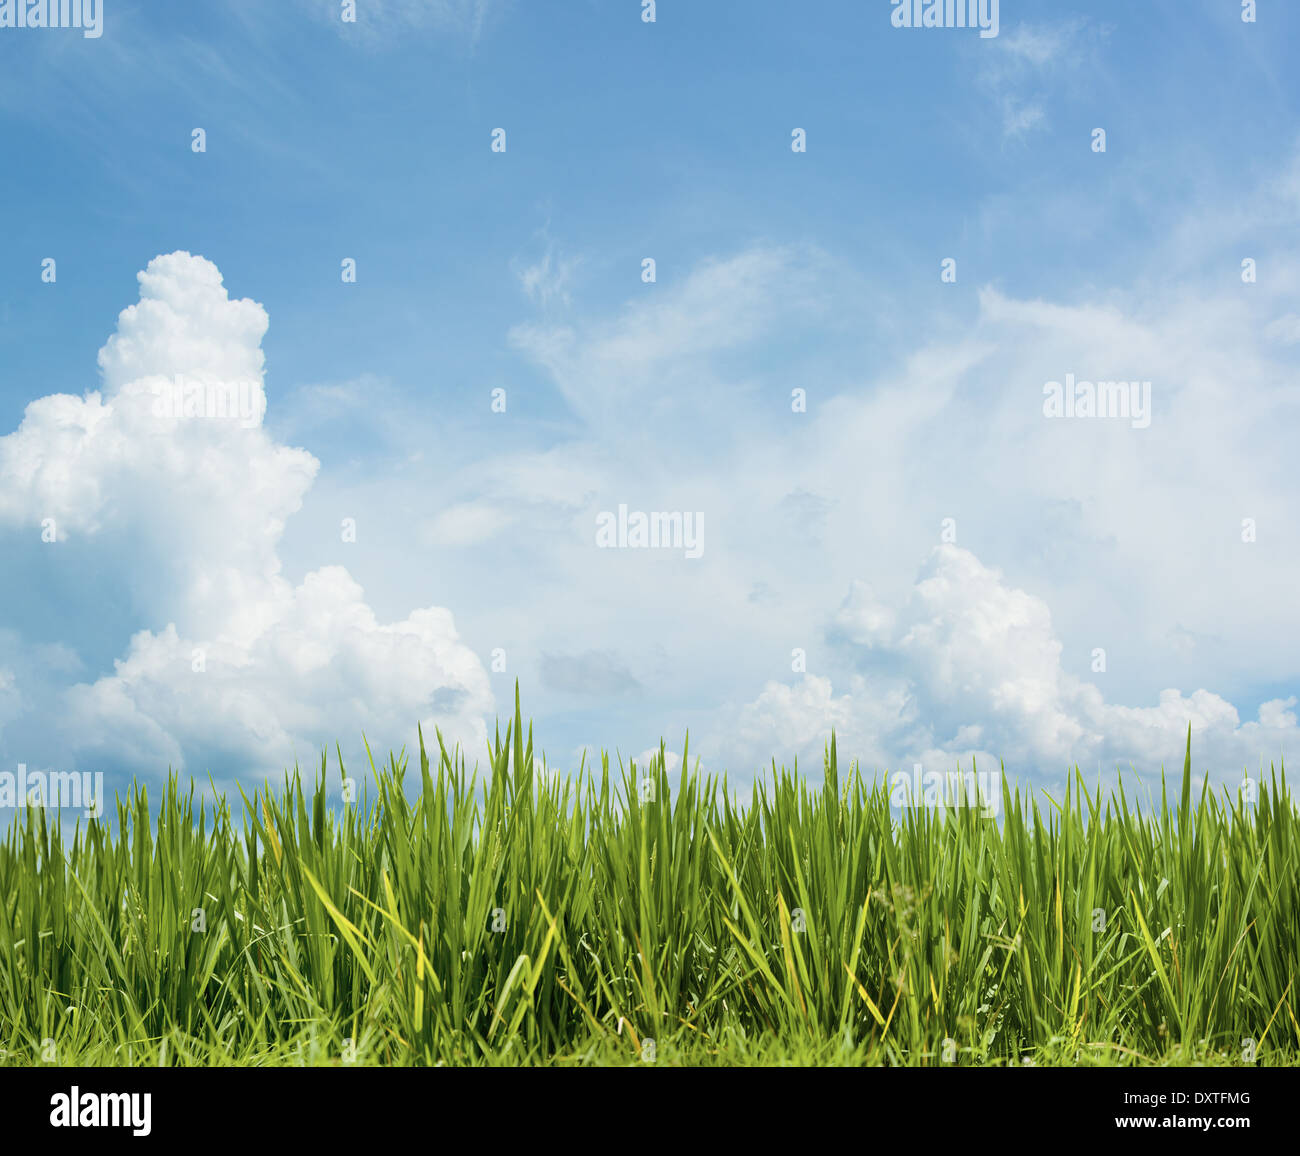 Grass under the beautiful sky. Rice field floral background - Stock Image